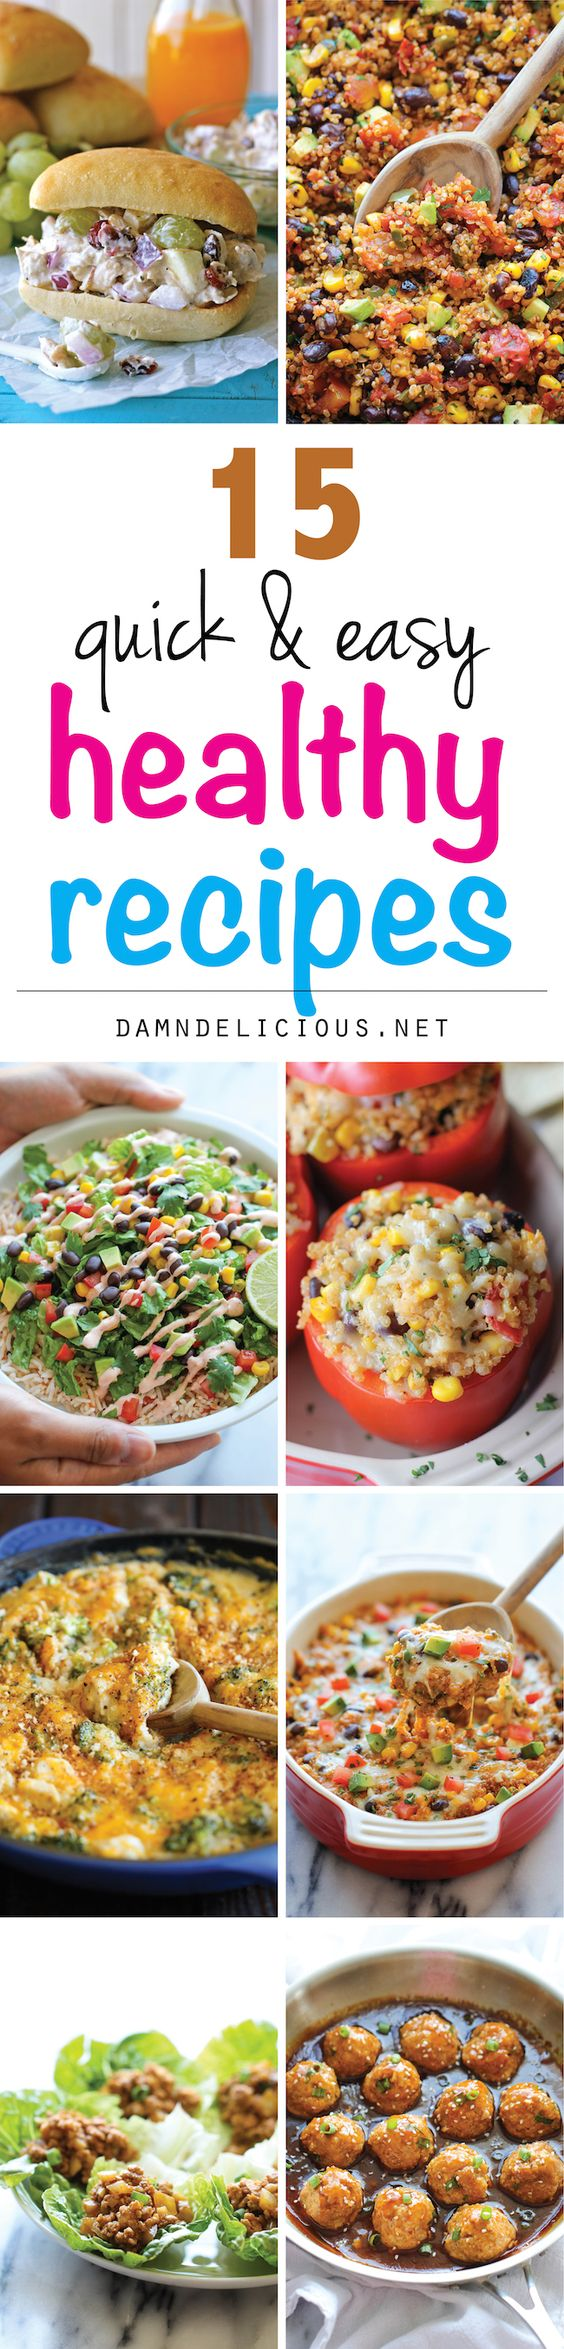 15 Quick And Easy Healthy Recipes Recipe The O 39 Jays And Easy Healthy R